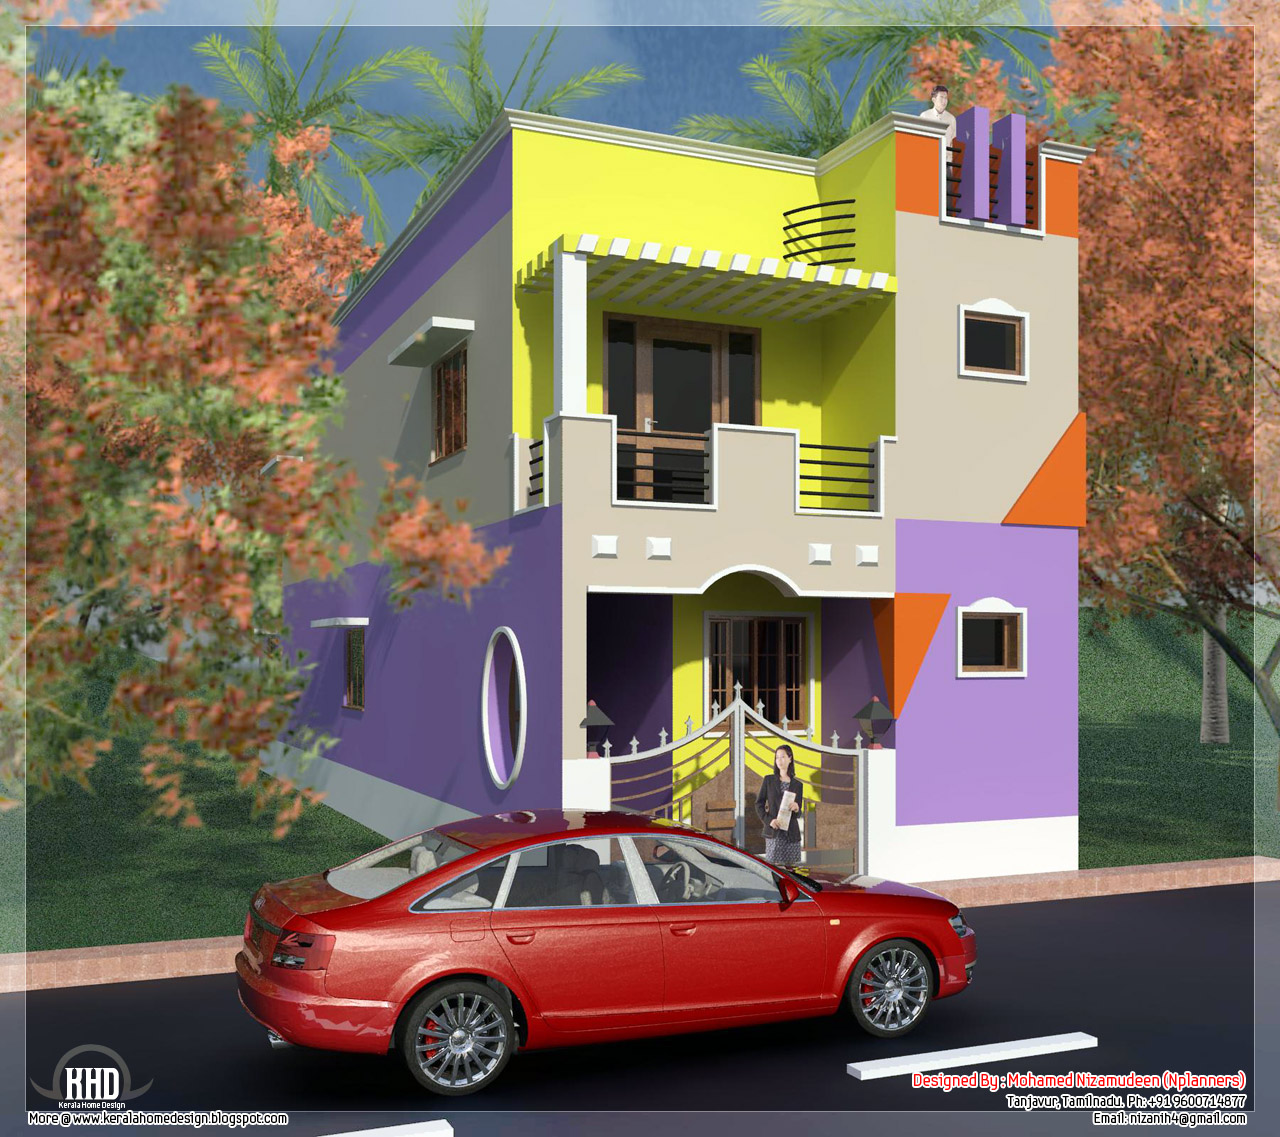 House models in tamil nadu joy studio design gallery for Tamil nadu house plan